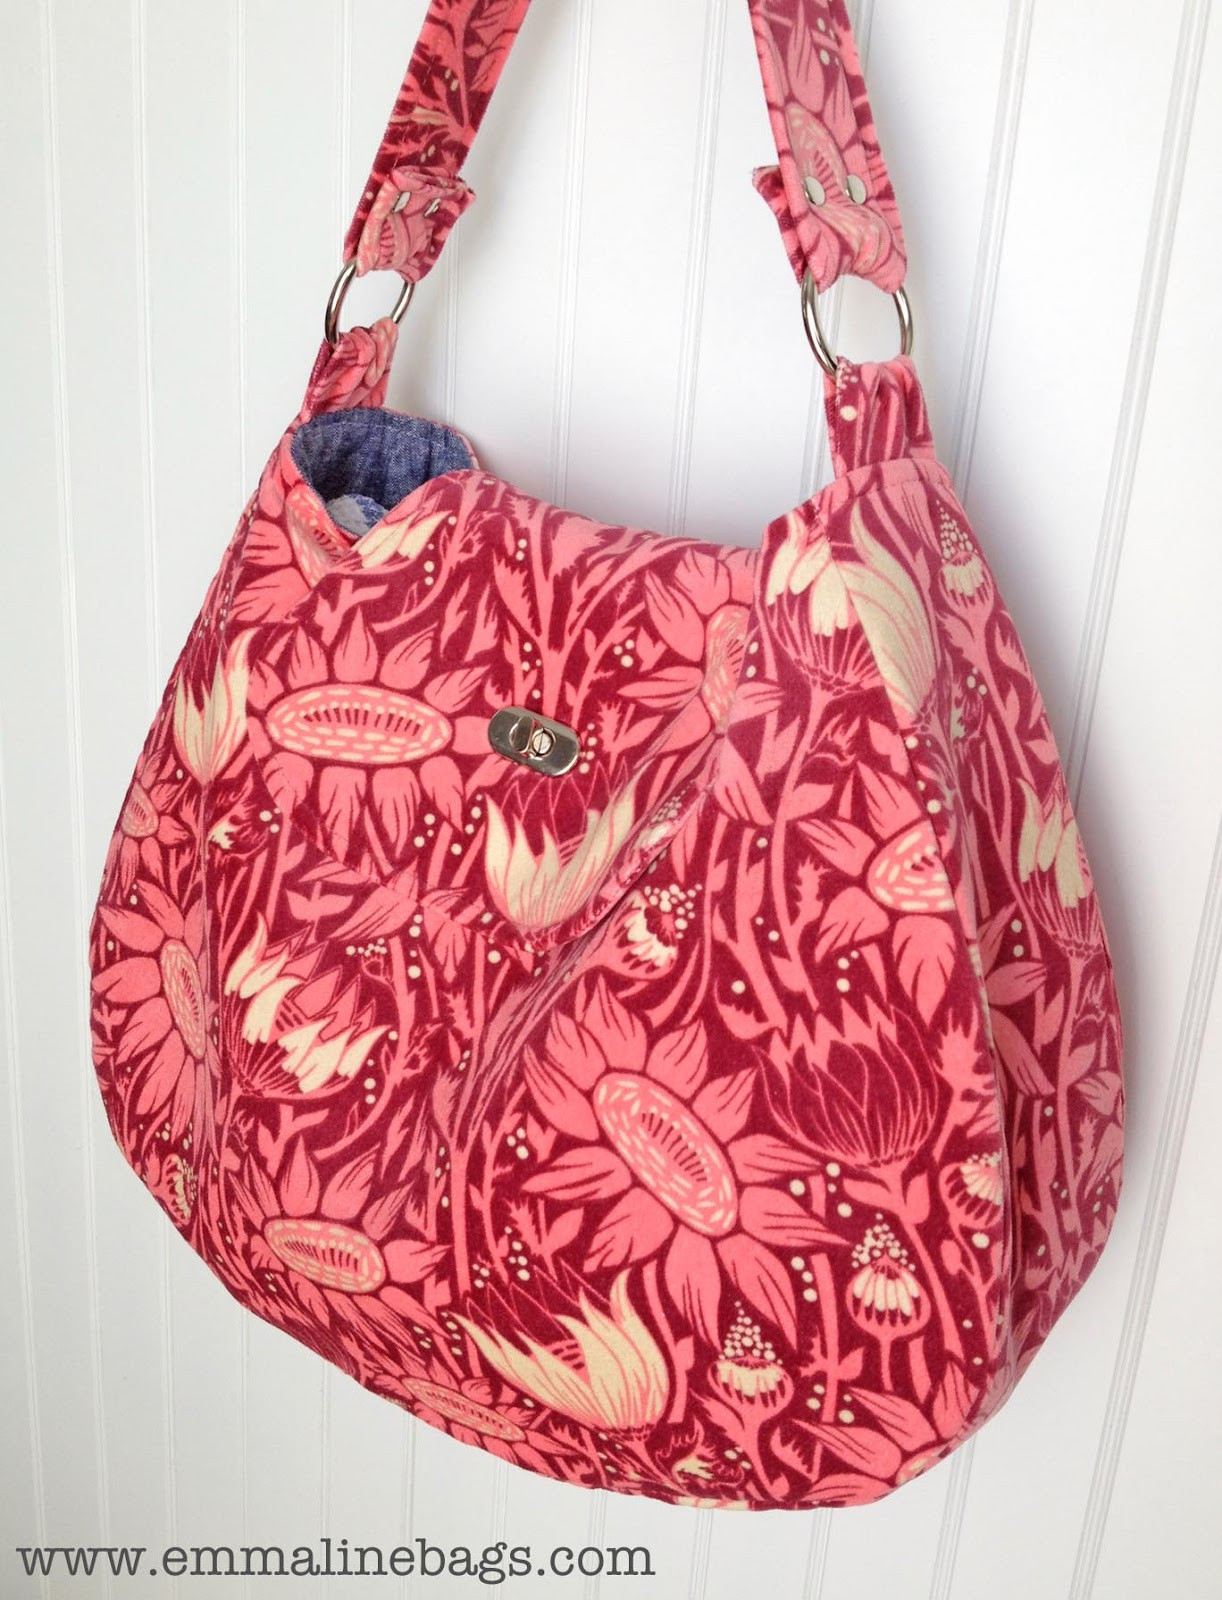 Hobo Bag Pattern Awesome Emmaline Bags Sewing Patterns and Purse Supplies Sewing Of Superb 45 Models Hobo Bag Pattern